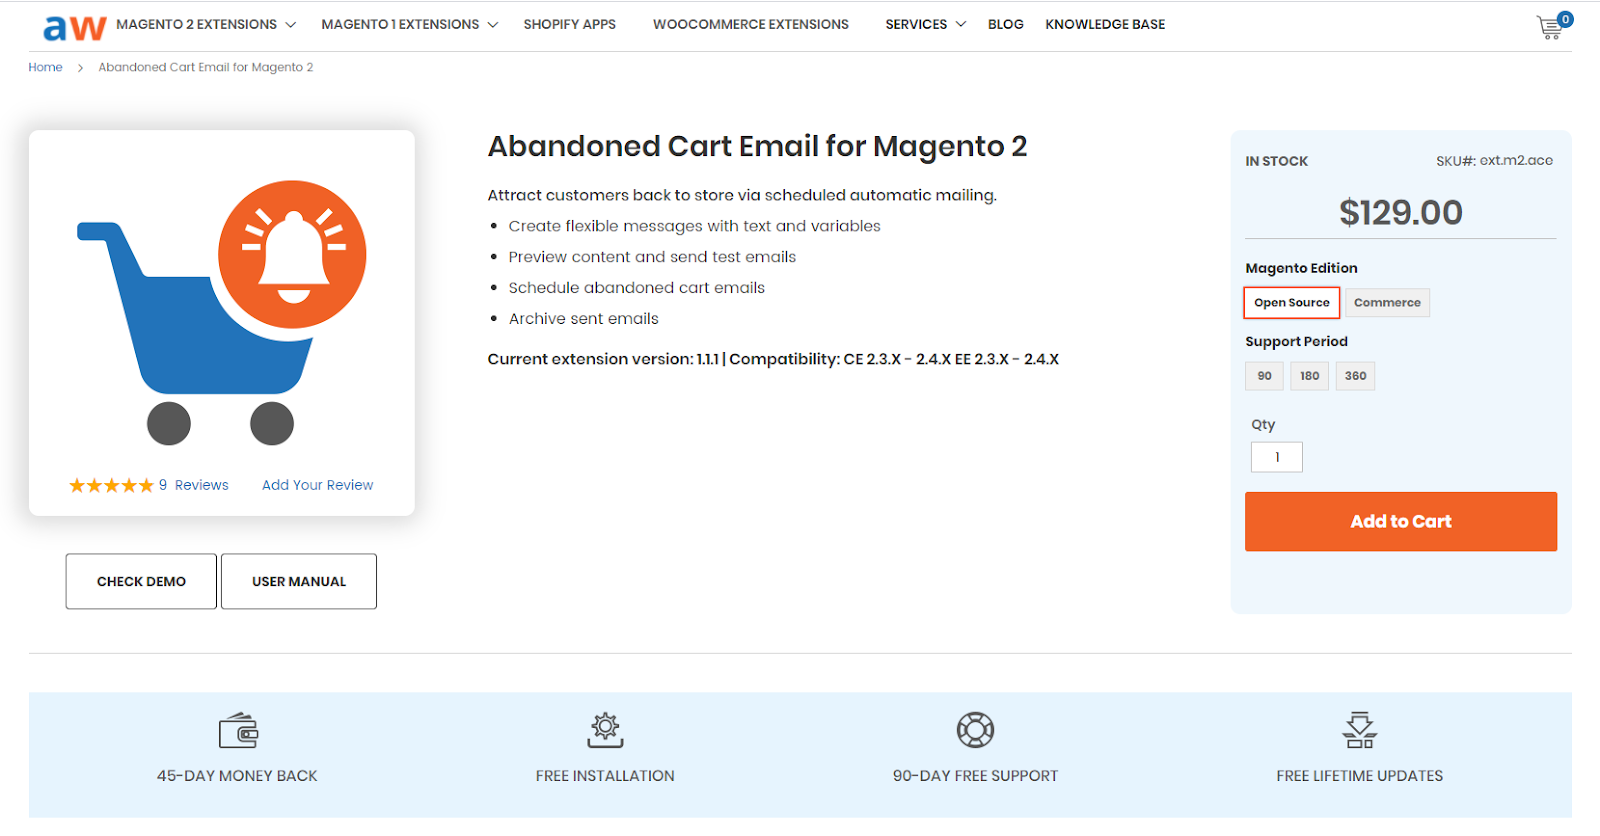 magento plugins - Aheadworks Abandoned Cart Email